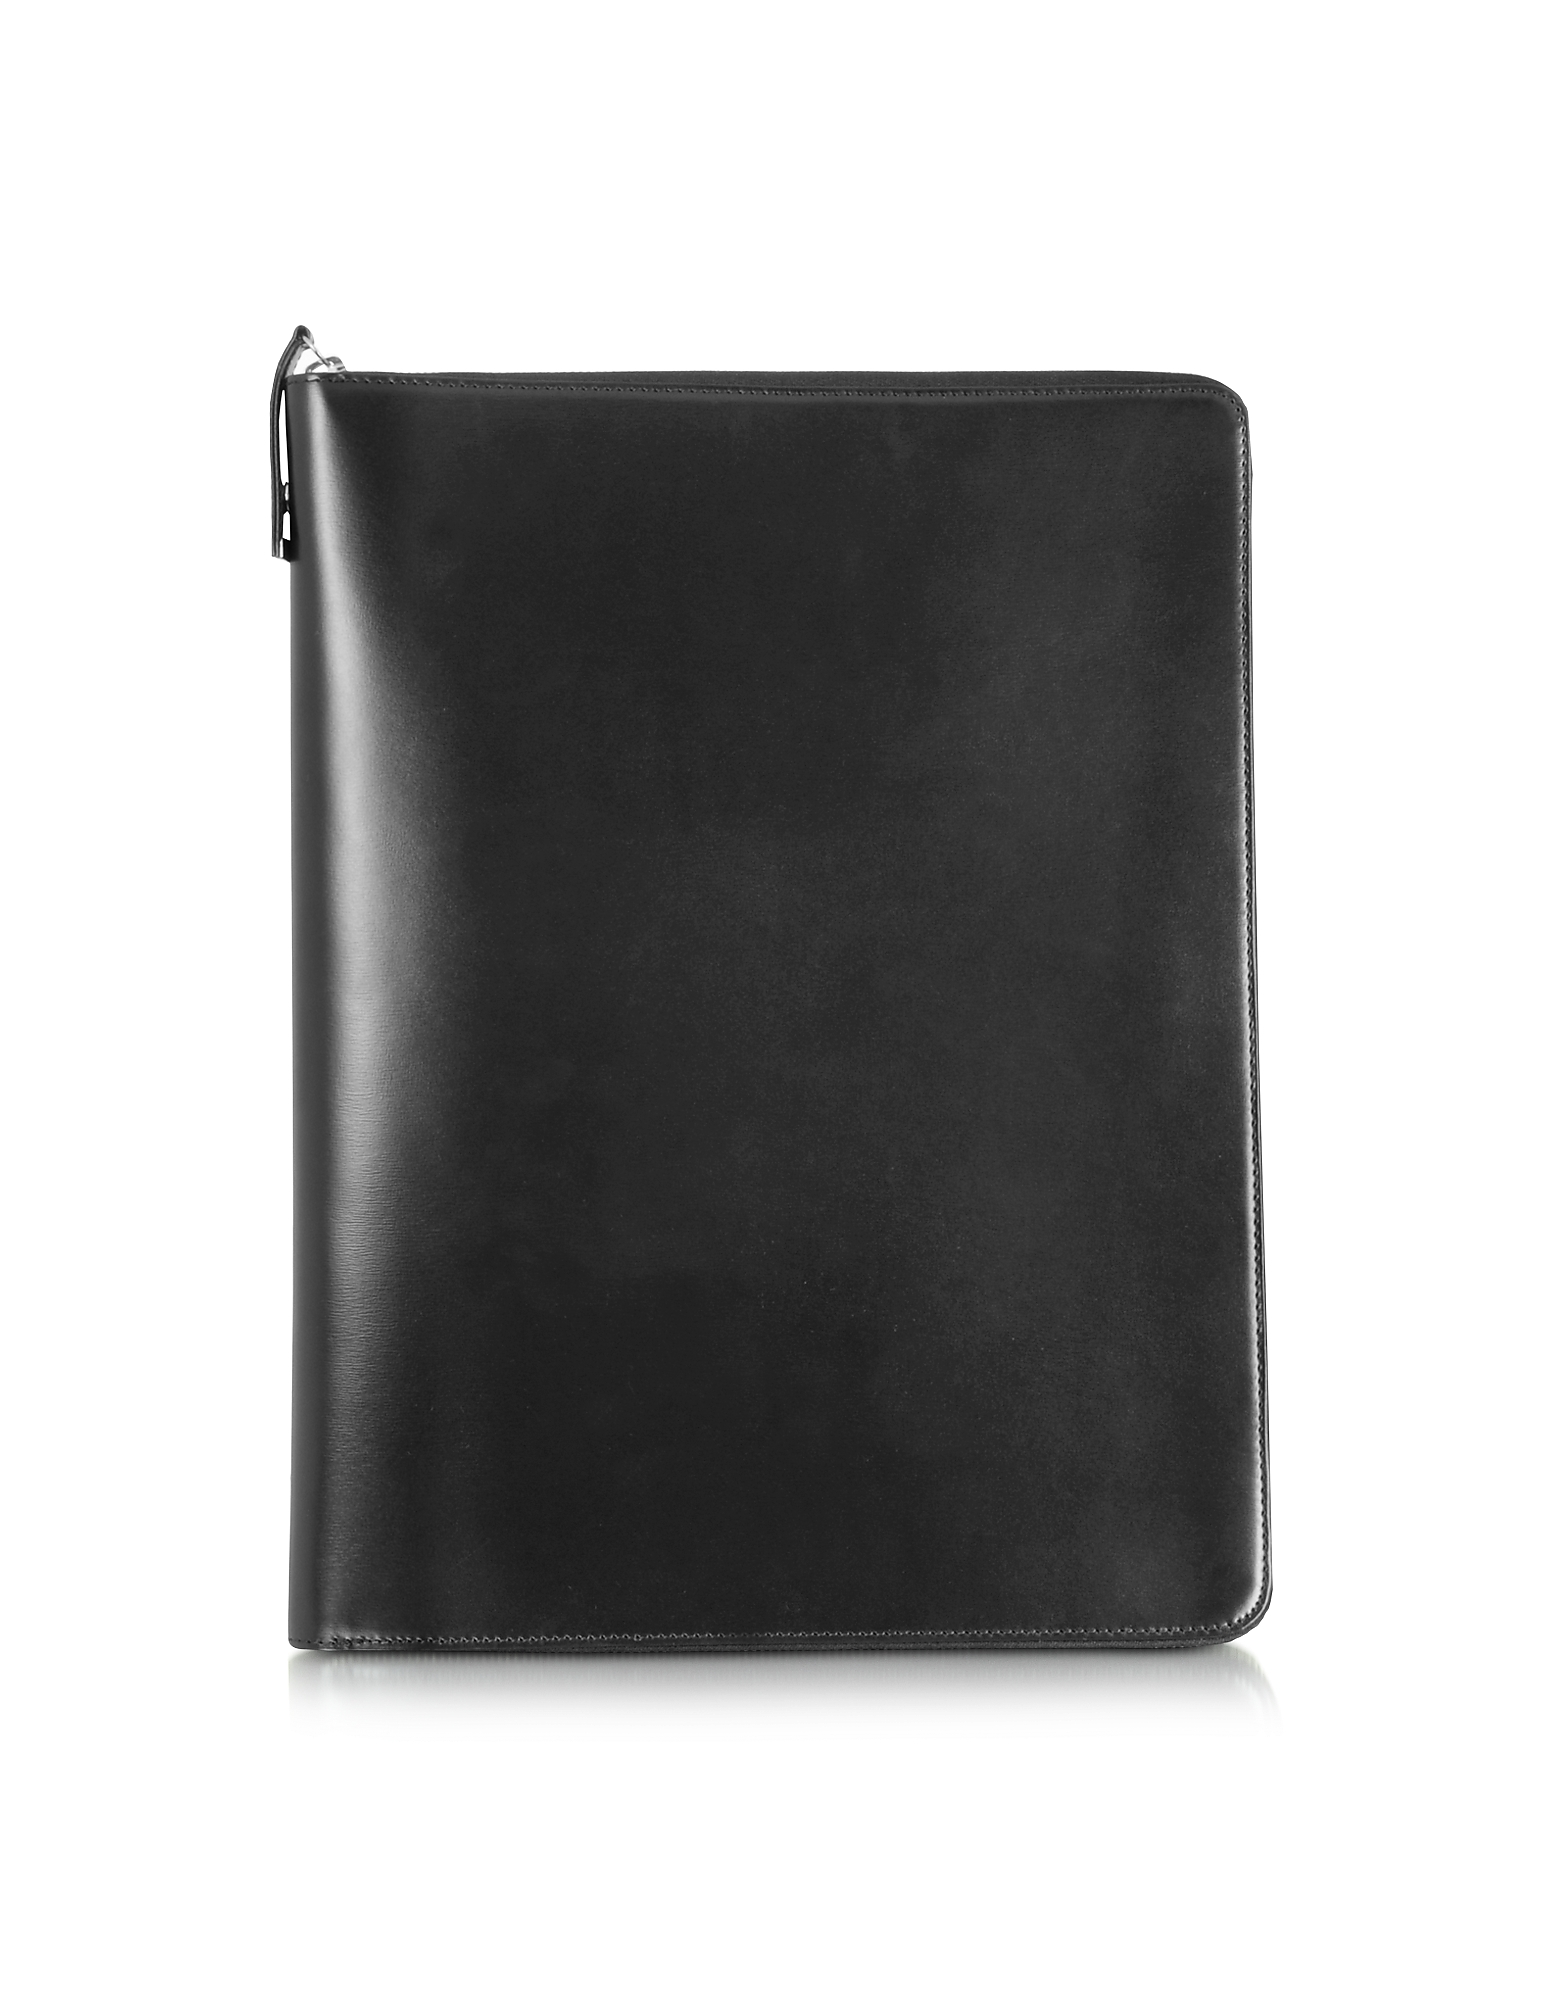 Pineider Designer Desk Accessories, 1949 A4 Black Leather Notepad Holder w/Zip pn380016-006-00